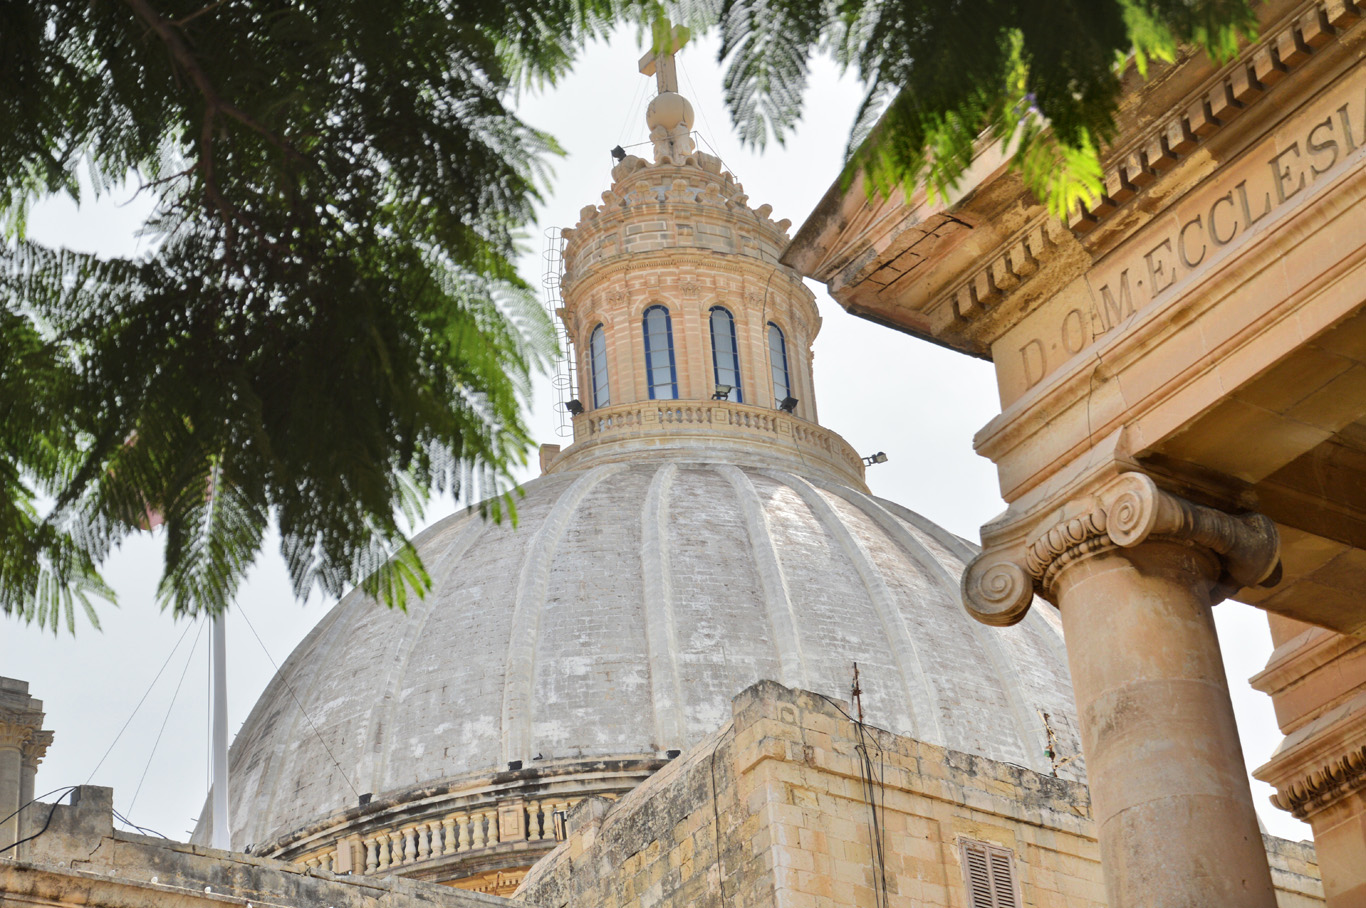 The dome of Basilica of Our Lady of Mount Carmel